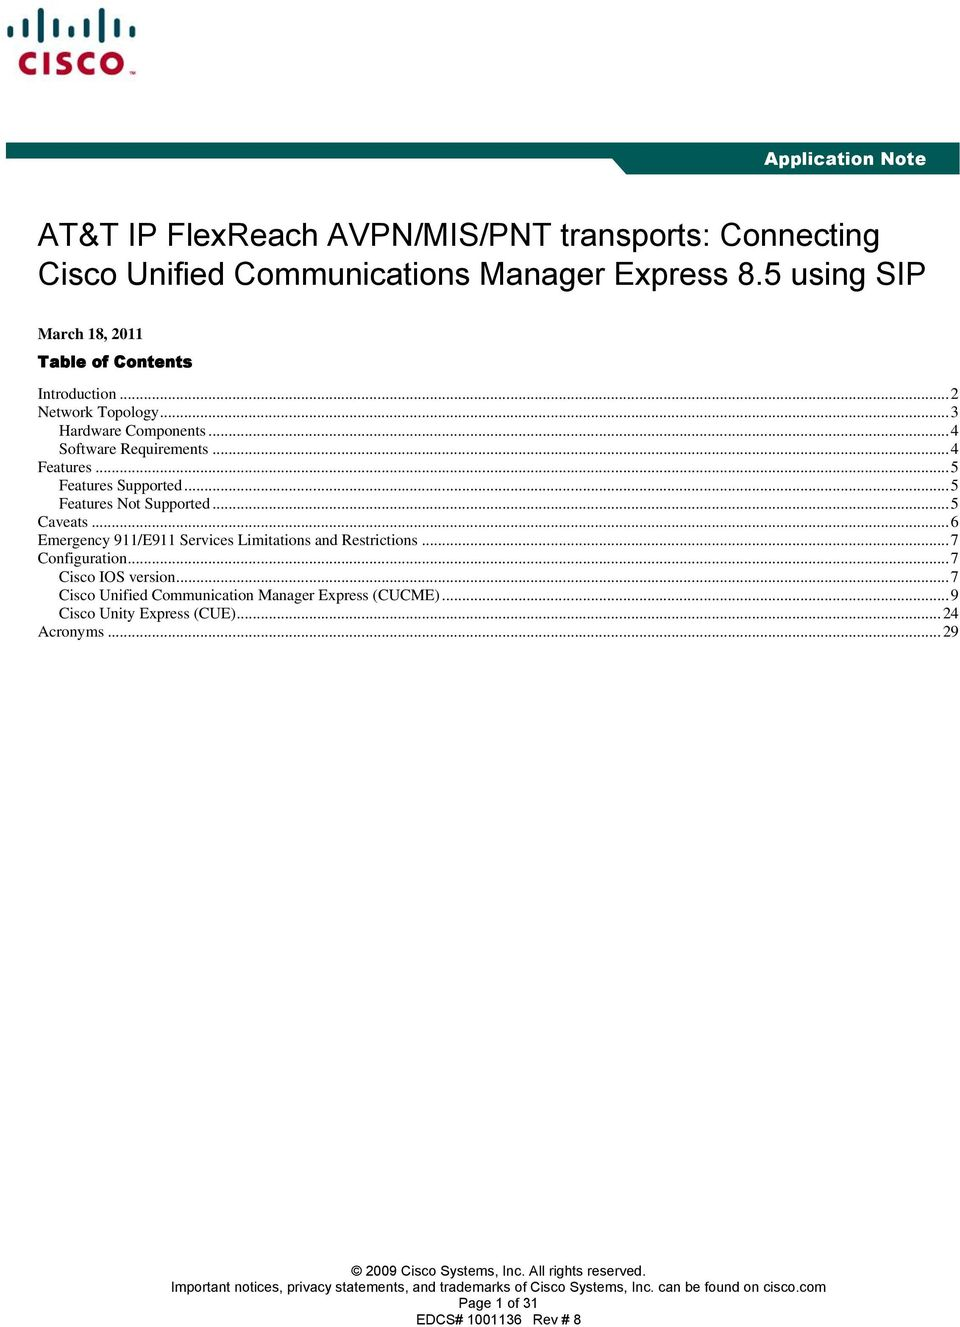 AT&T IP FlexReach AVPN/MIS/PNT transports: Connecting Cisco Unified